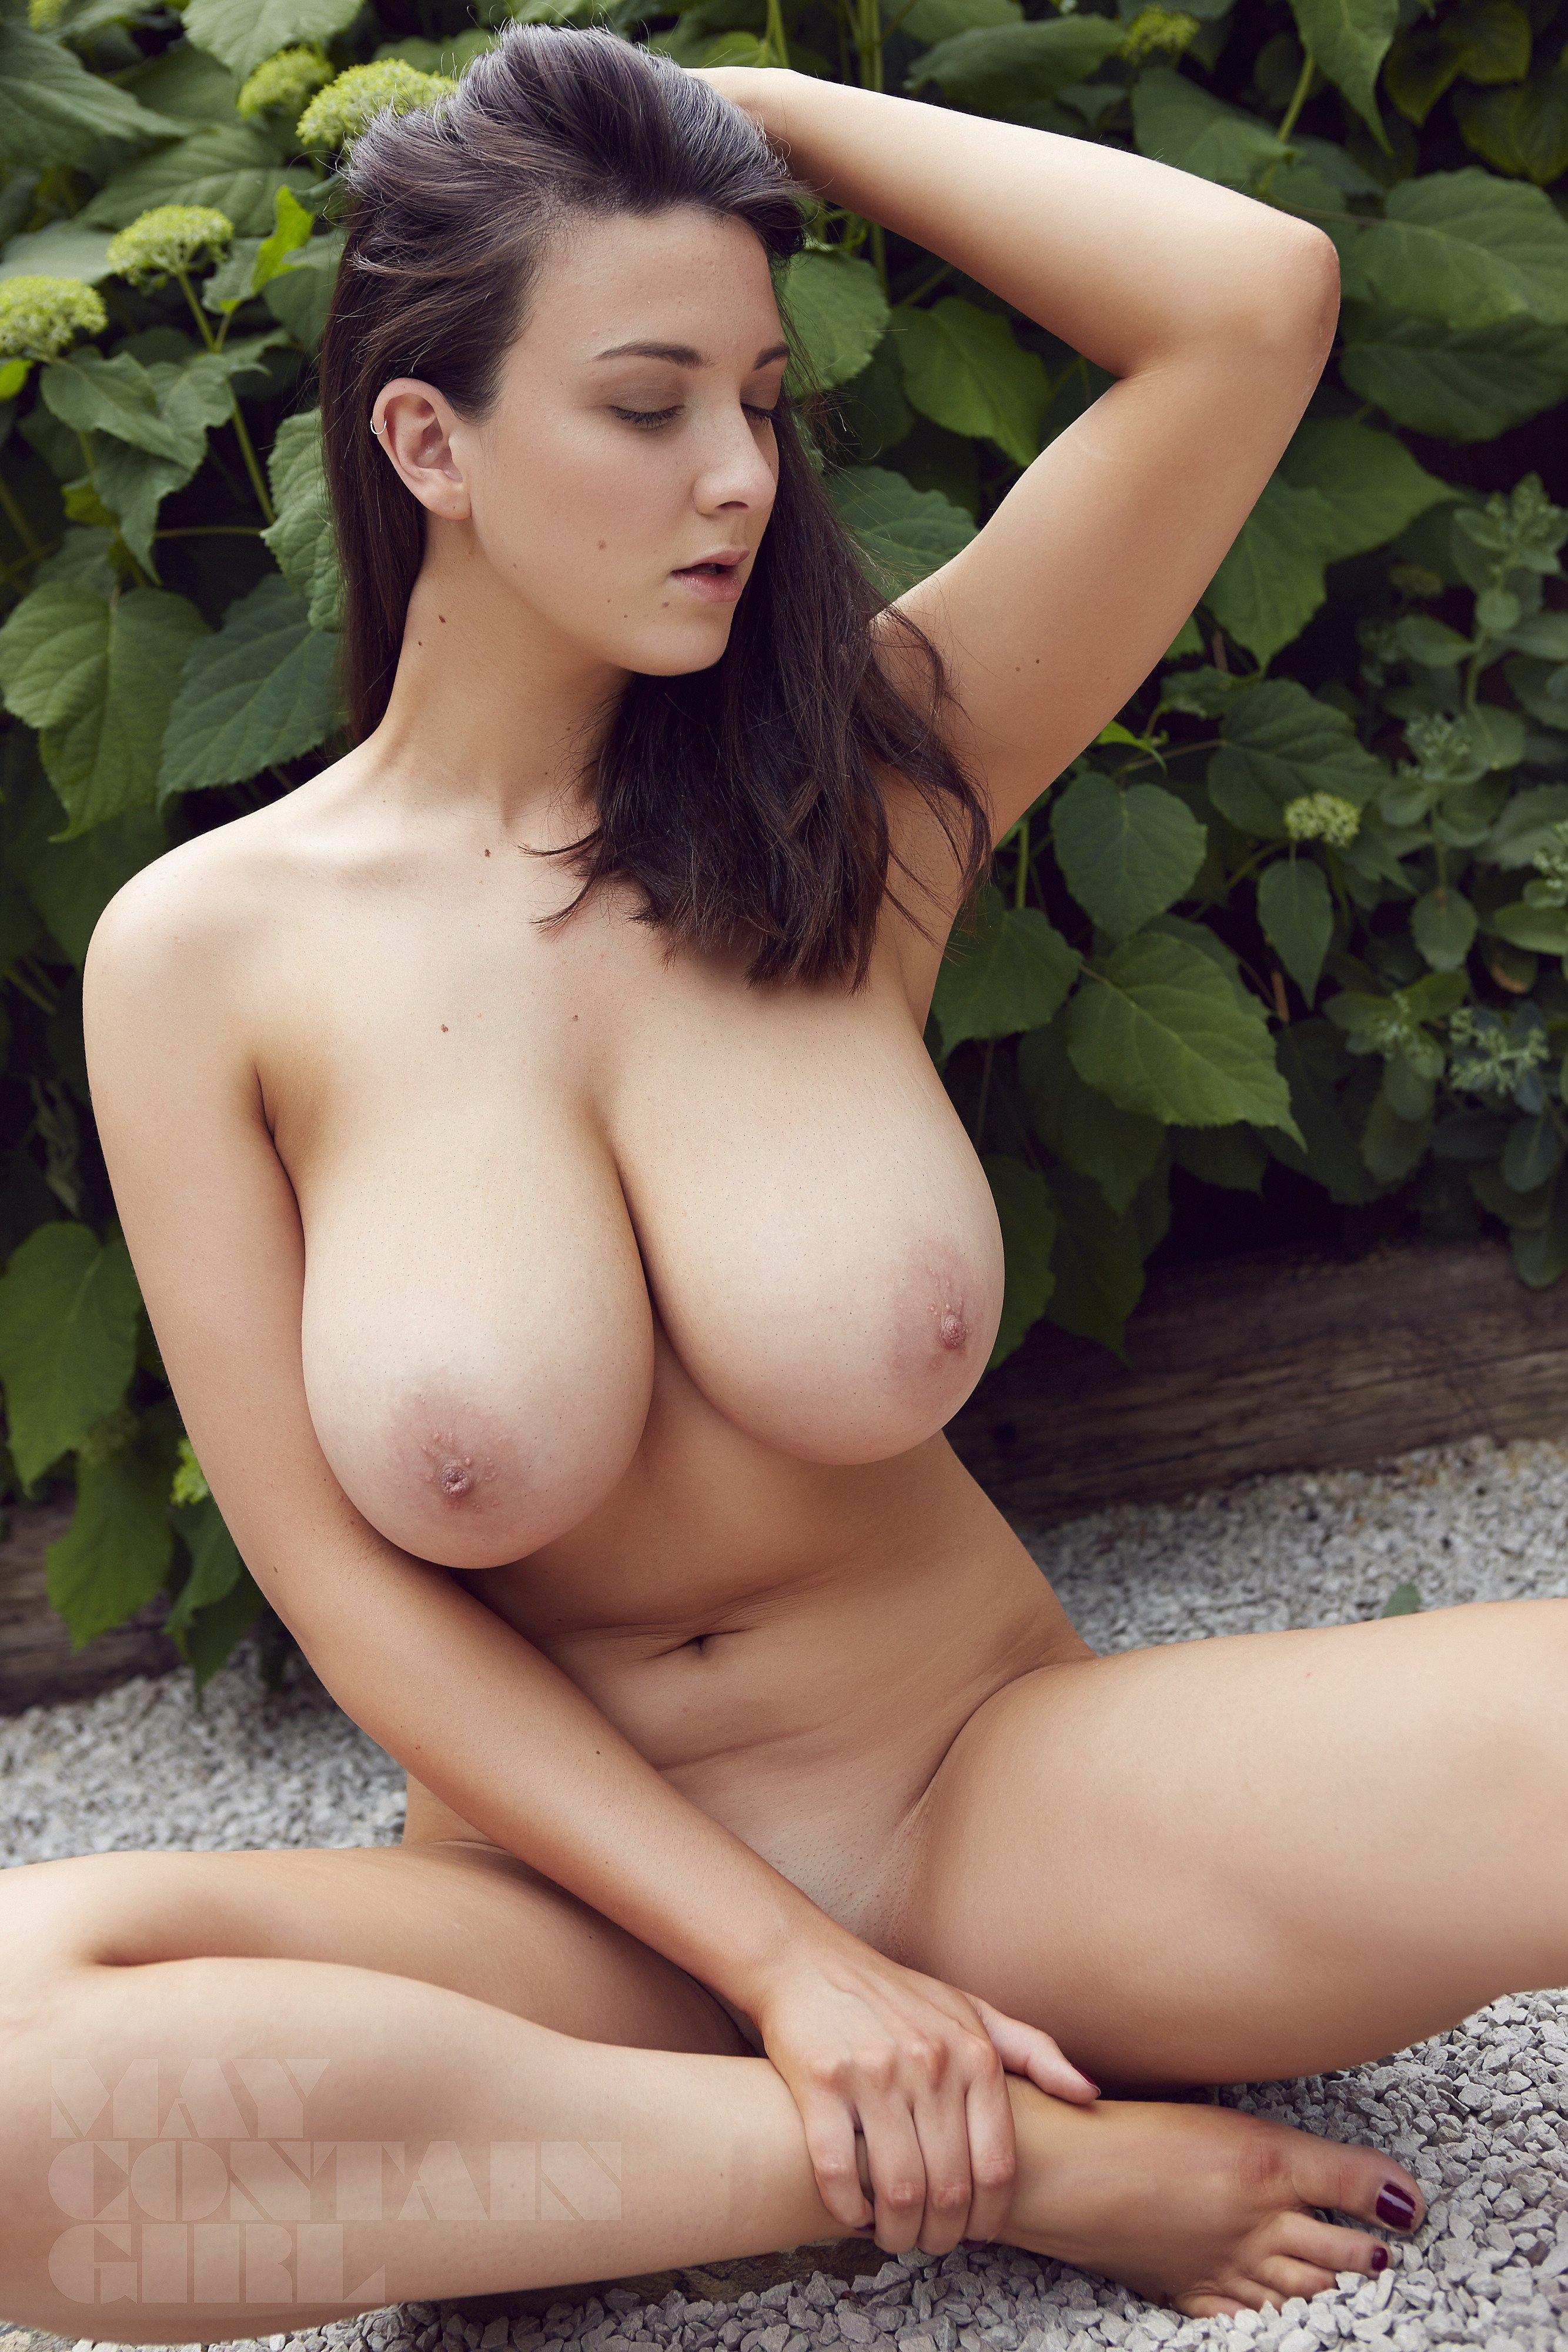 Awesome Natural Boobs